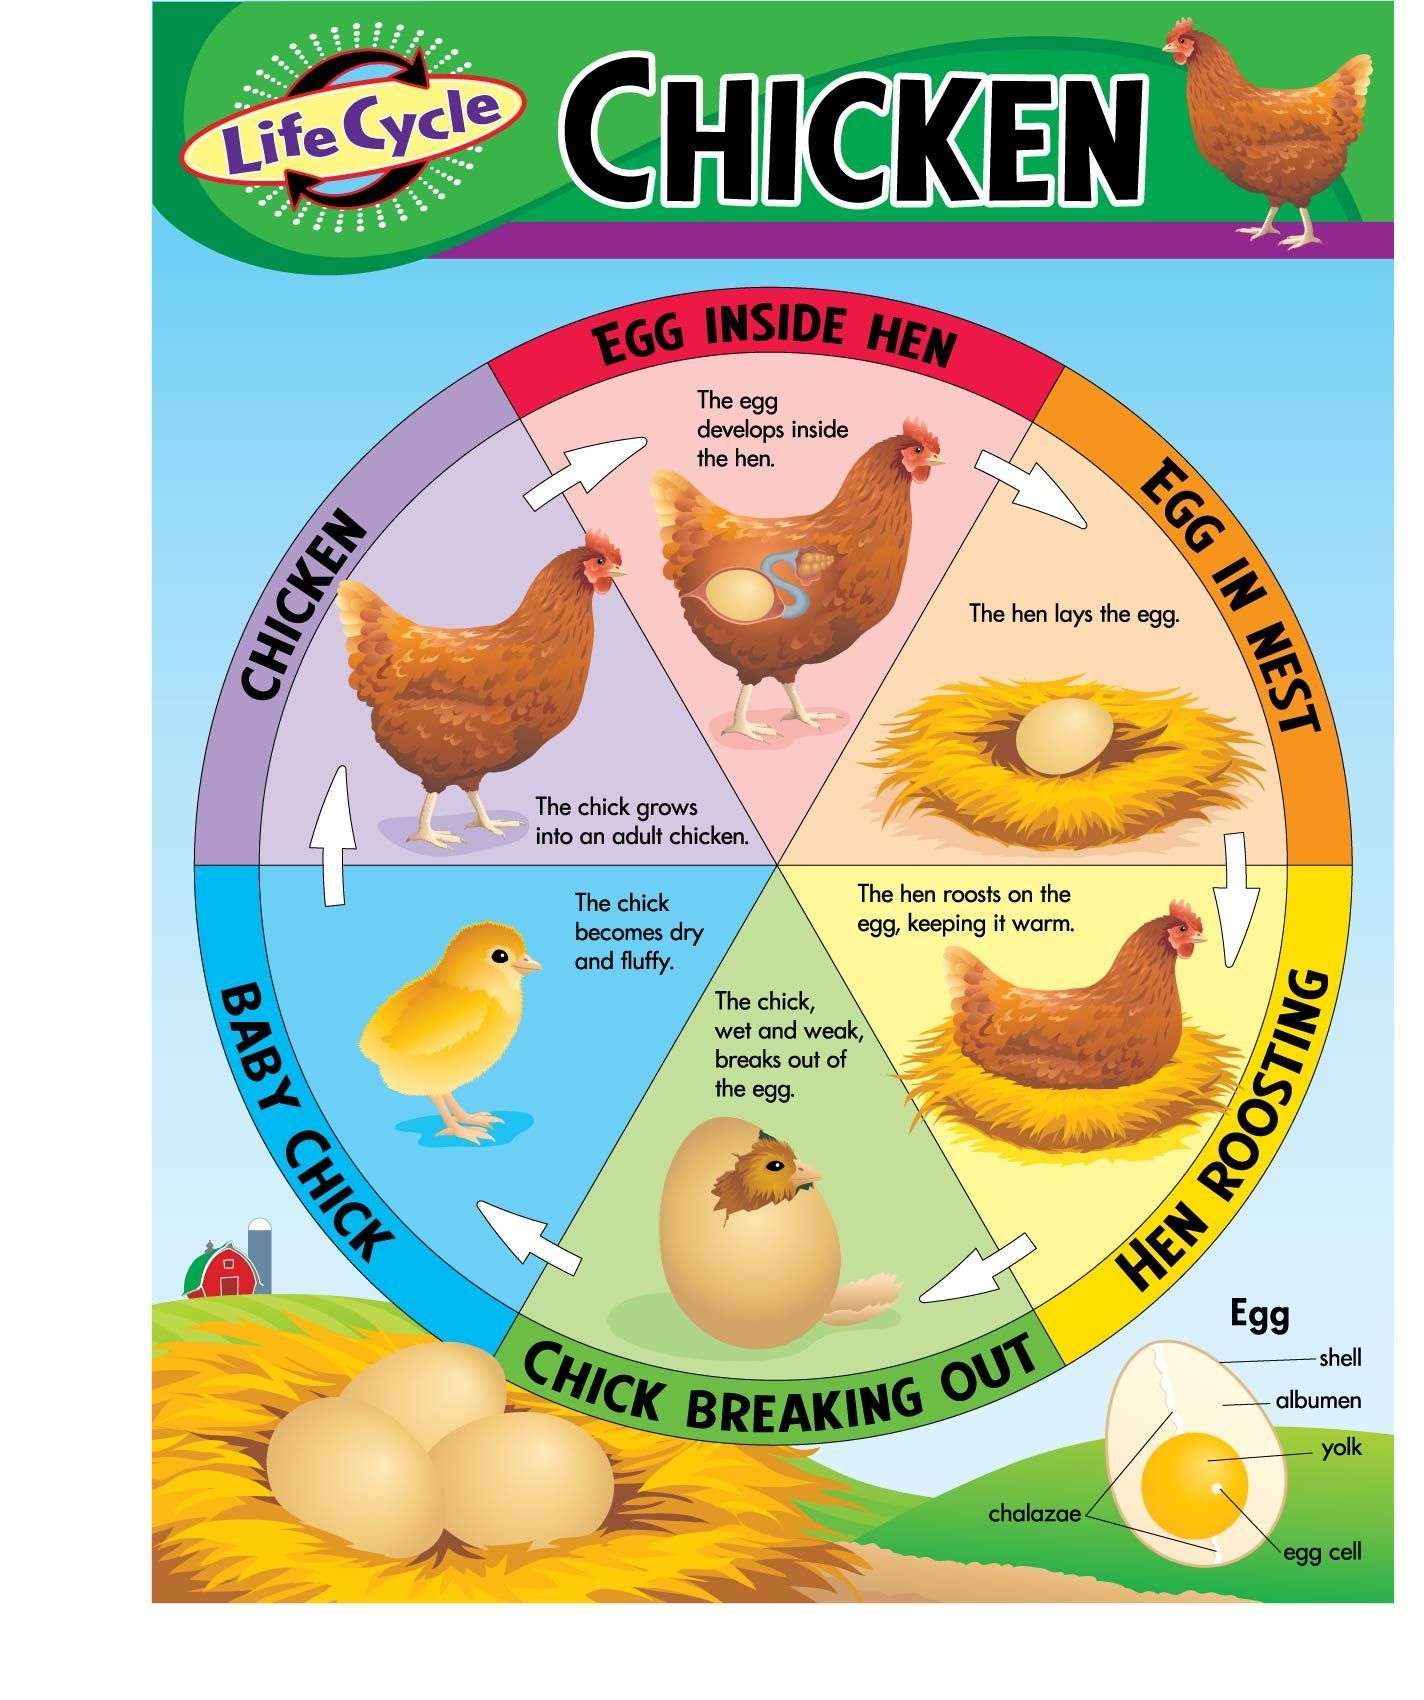 Uncategorized Chicken Life Cycle Worksheet original 55536 sk4rzepmln9ohl4rh1zjf5wpk jpg trend enterprises inc chart life cycle of a chicken on sale now find all your educational supplies at huge discounts dk cla